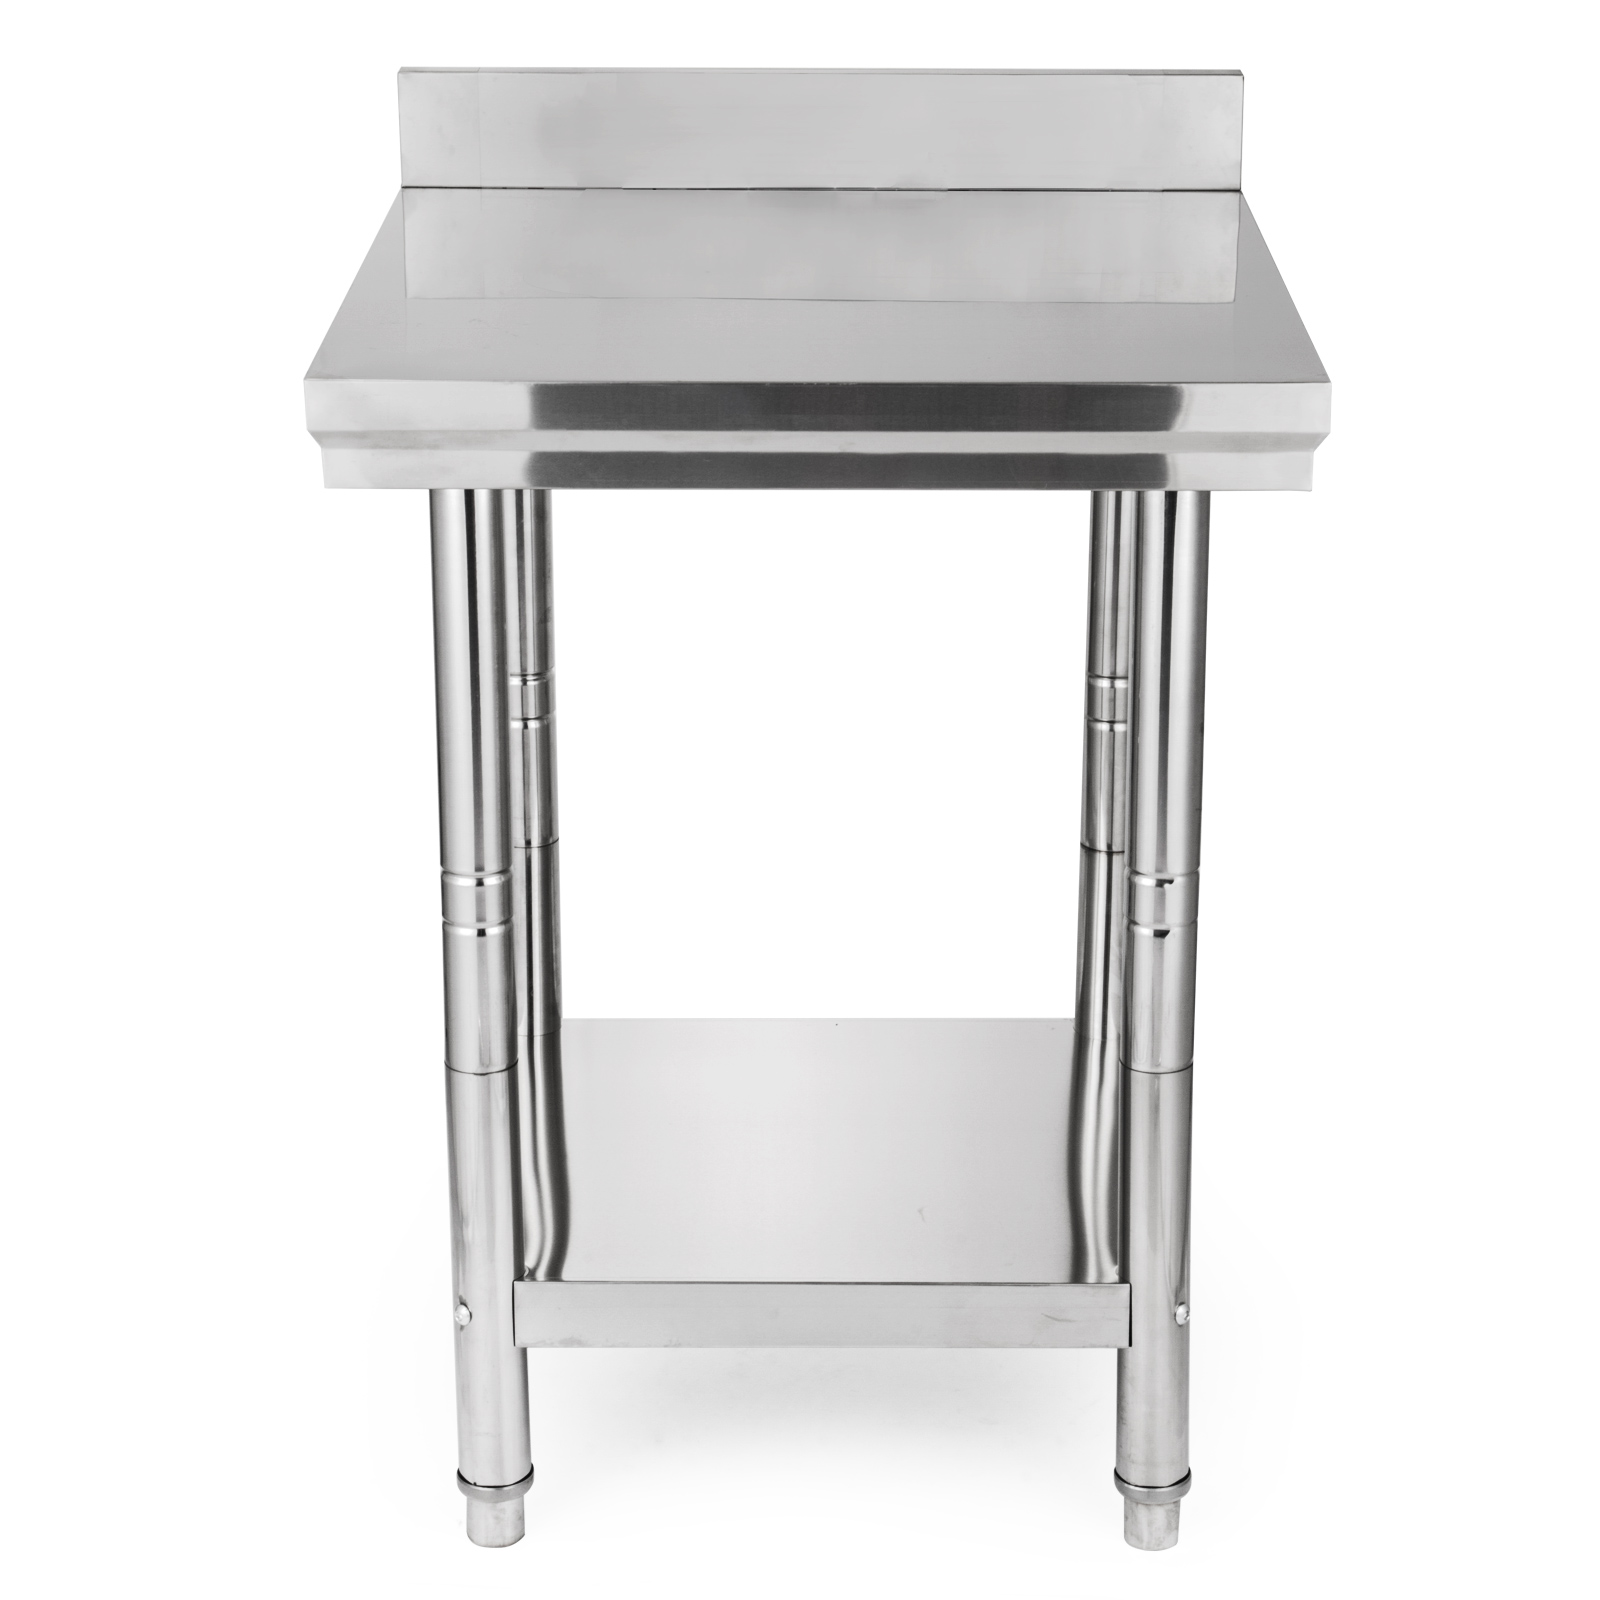 11 Style Stainless Steel Work Prep Table Station ...